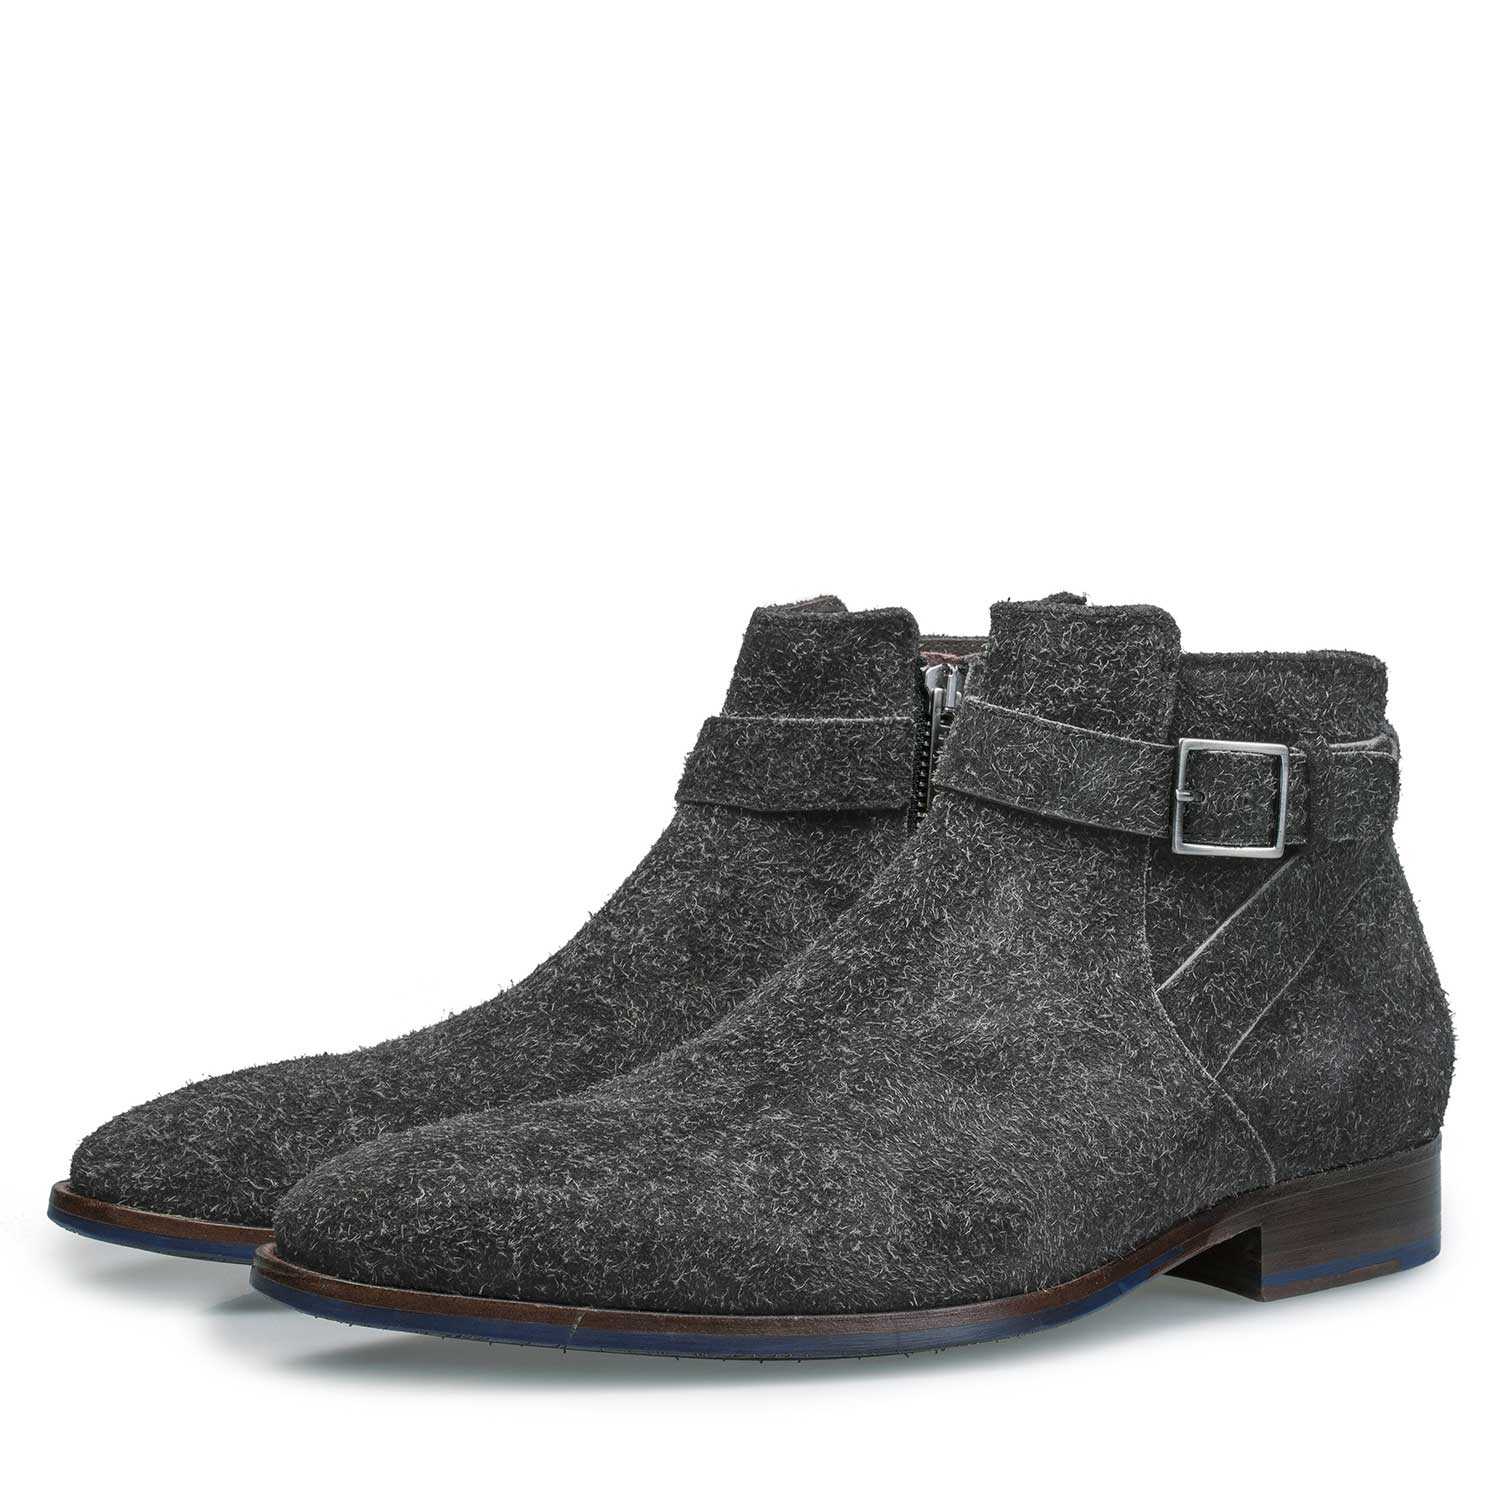 10422/02 - Grey rough suede leather ankle boot